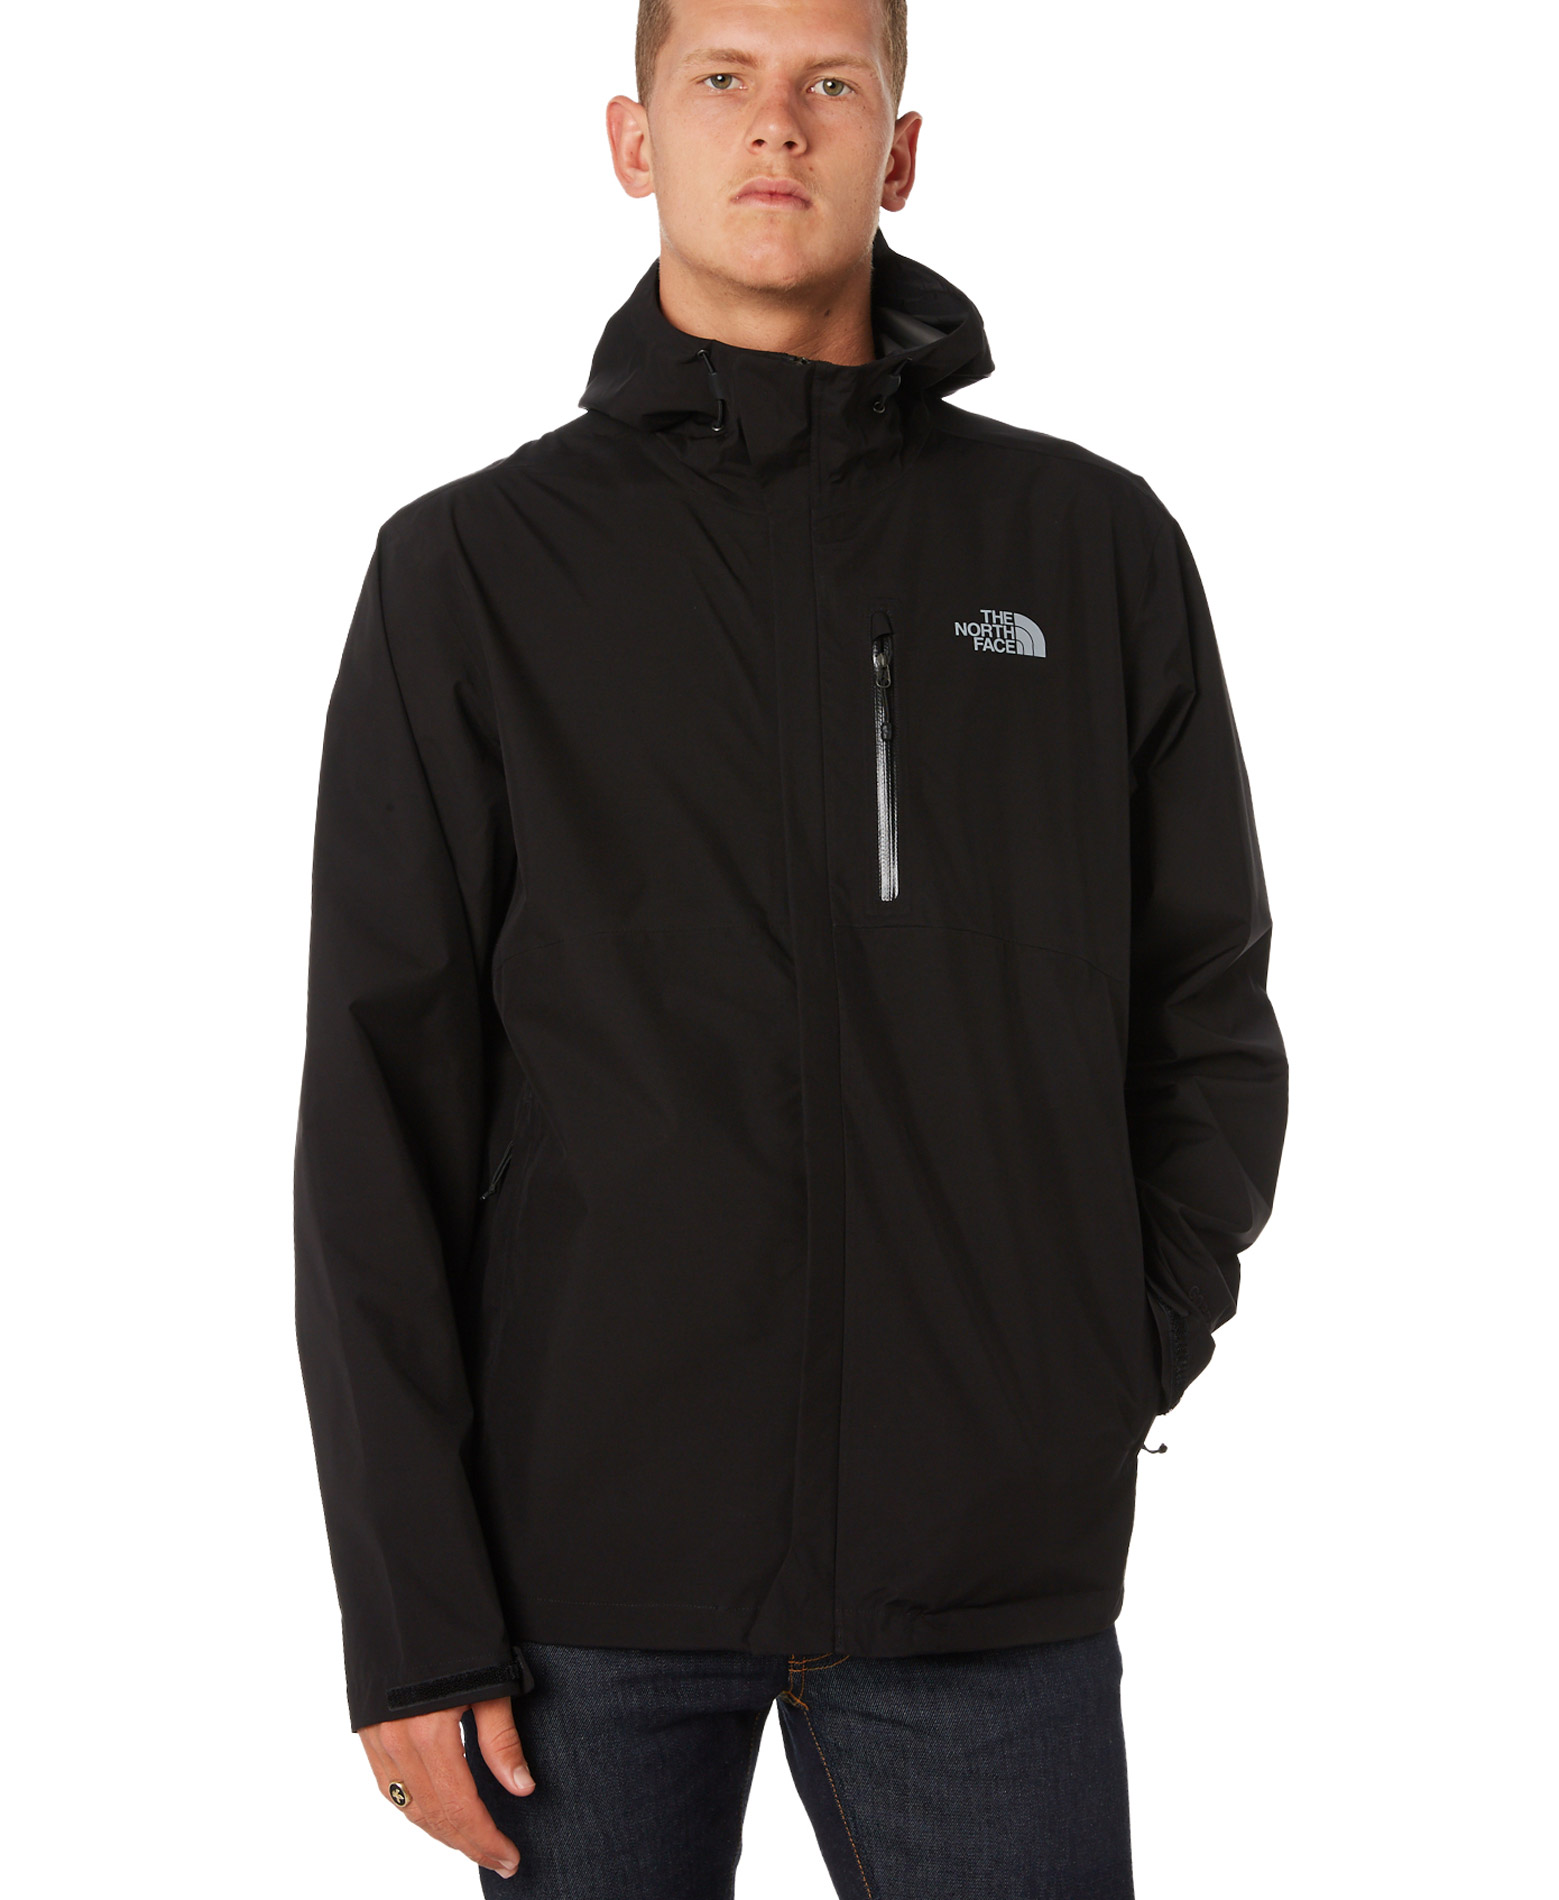 THE NORTH FACE M DRYZL FL JKT NFA4AHMJK3-JK3 Μαύρο